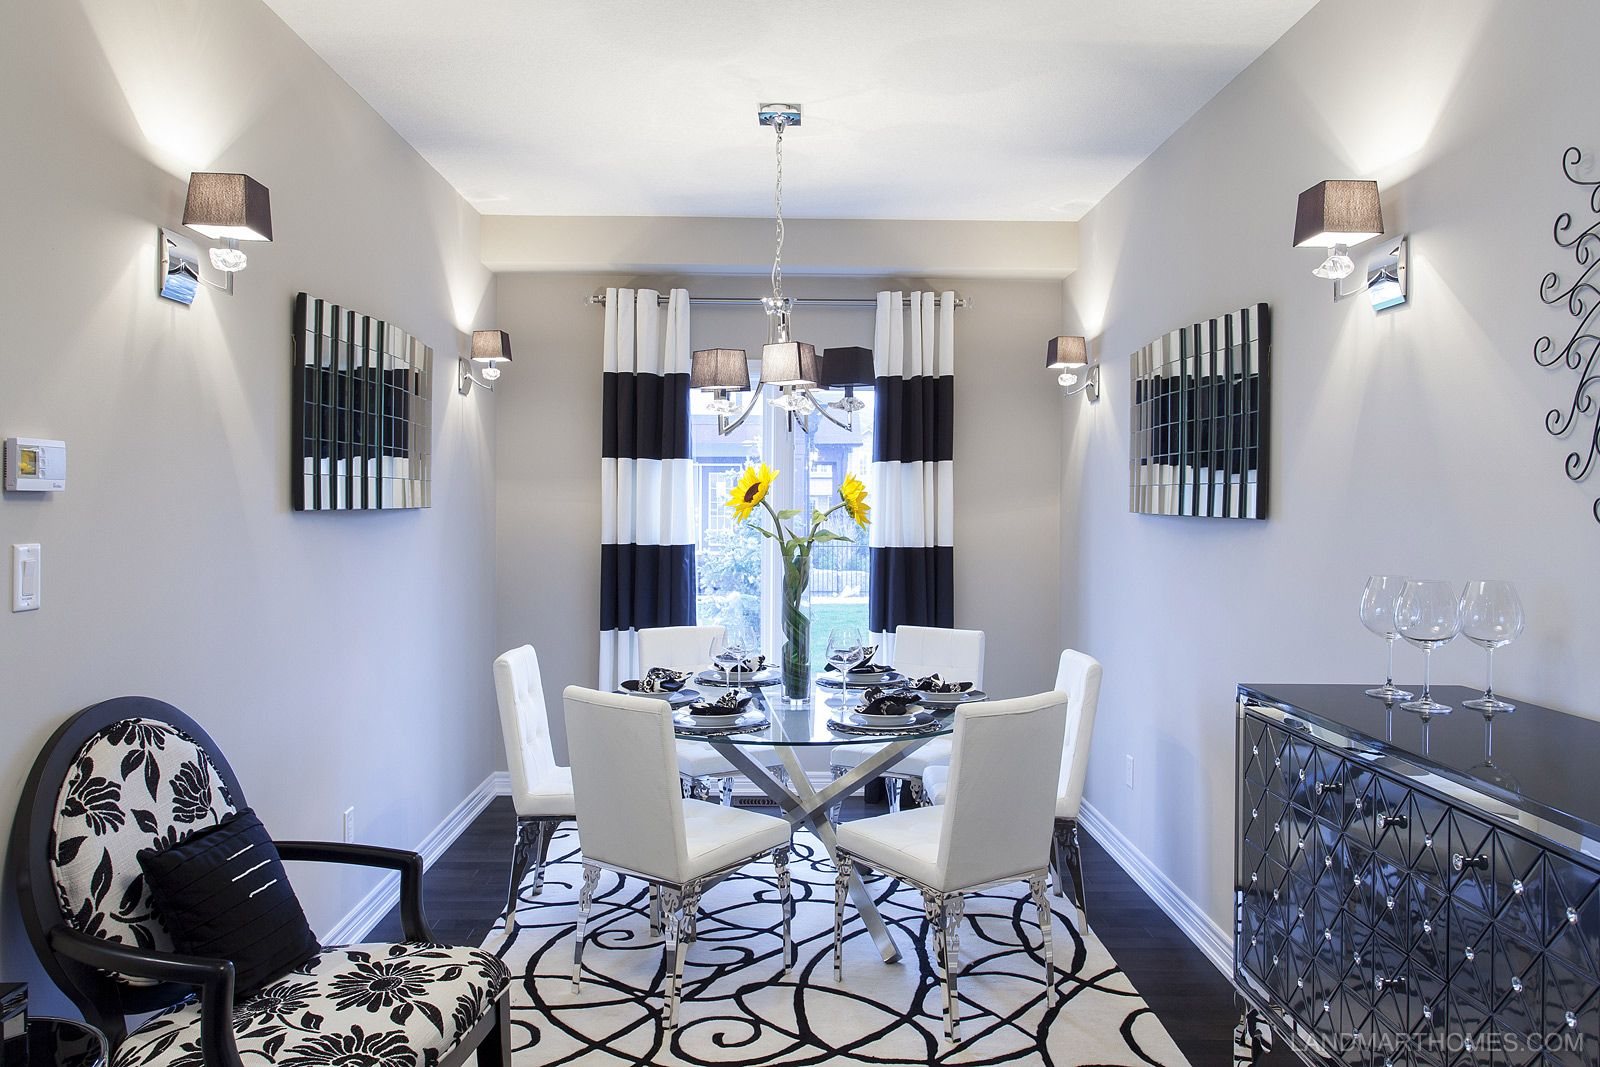 The depth of this dining room combined with its modern design give it a  striking look. Penny Lane Estates in Stoney Creek, Ontario. By Landmart  Homes.